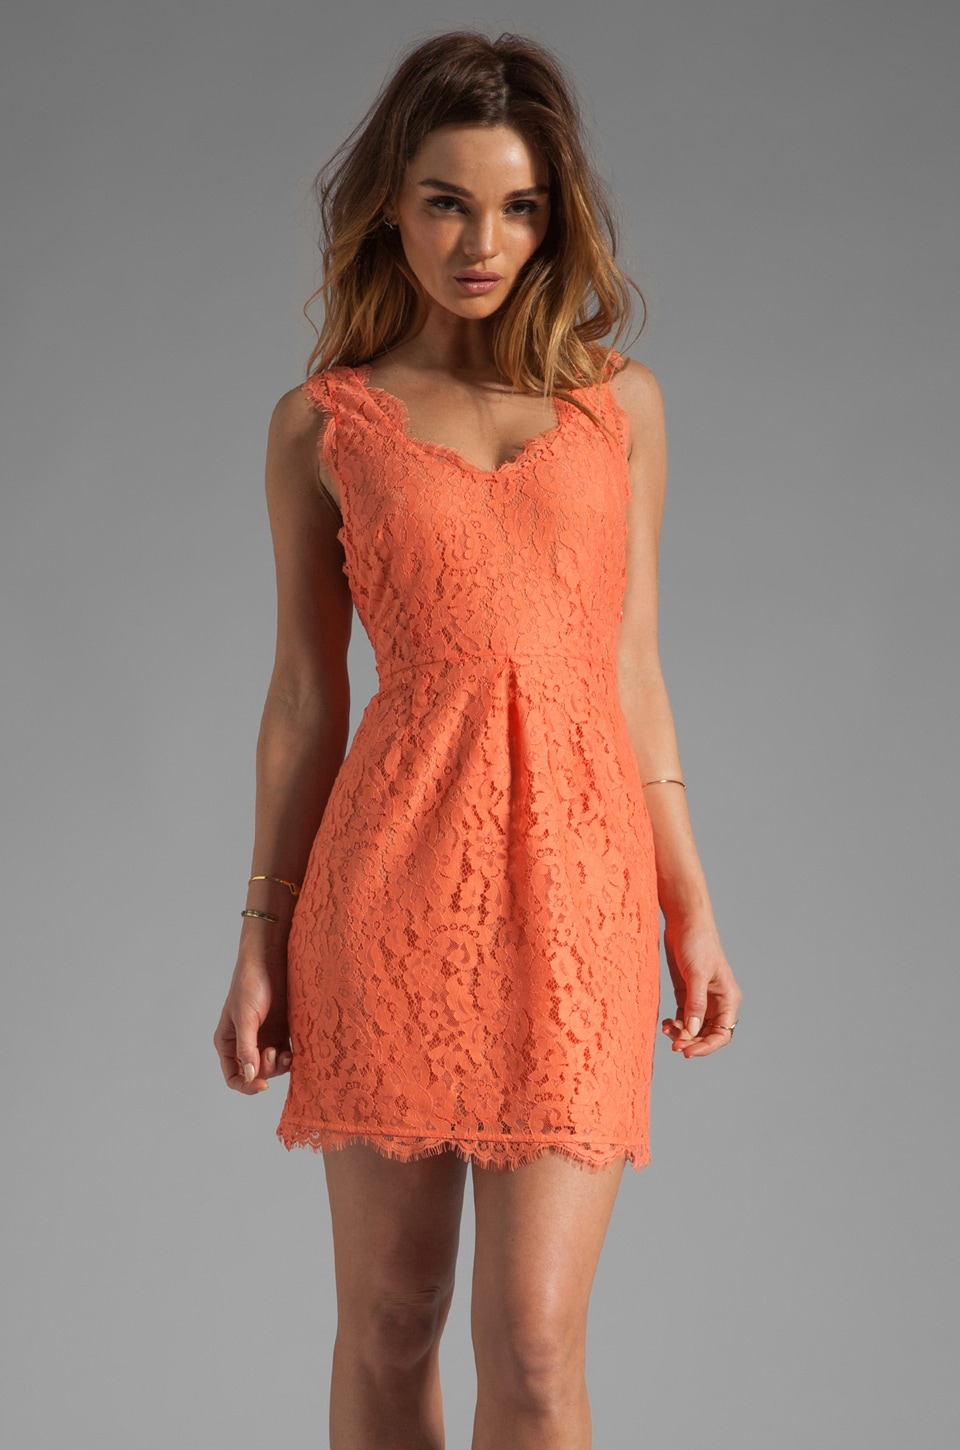 Joie Rori Lace Dress in Hot Coral